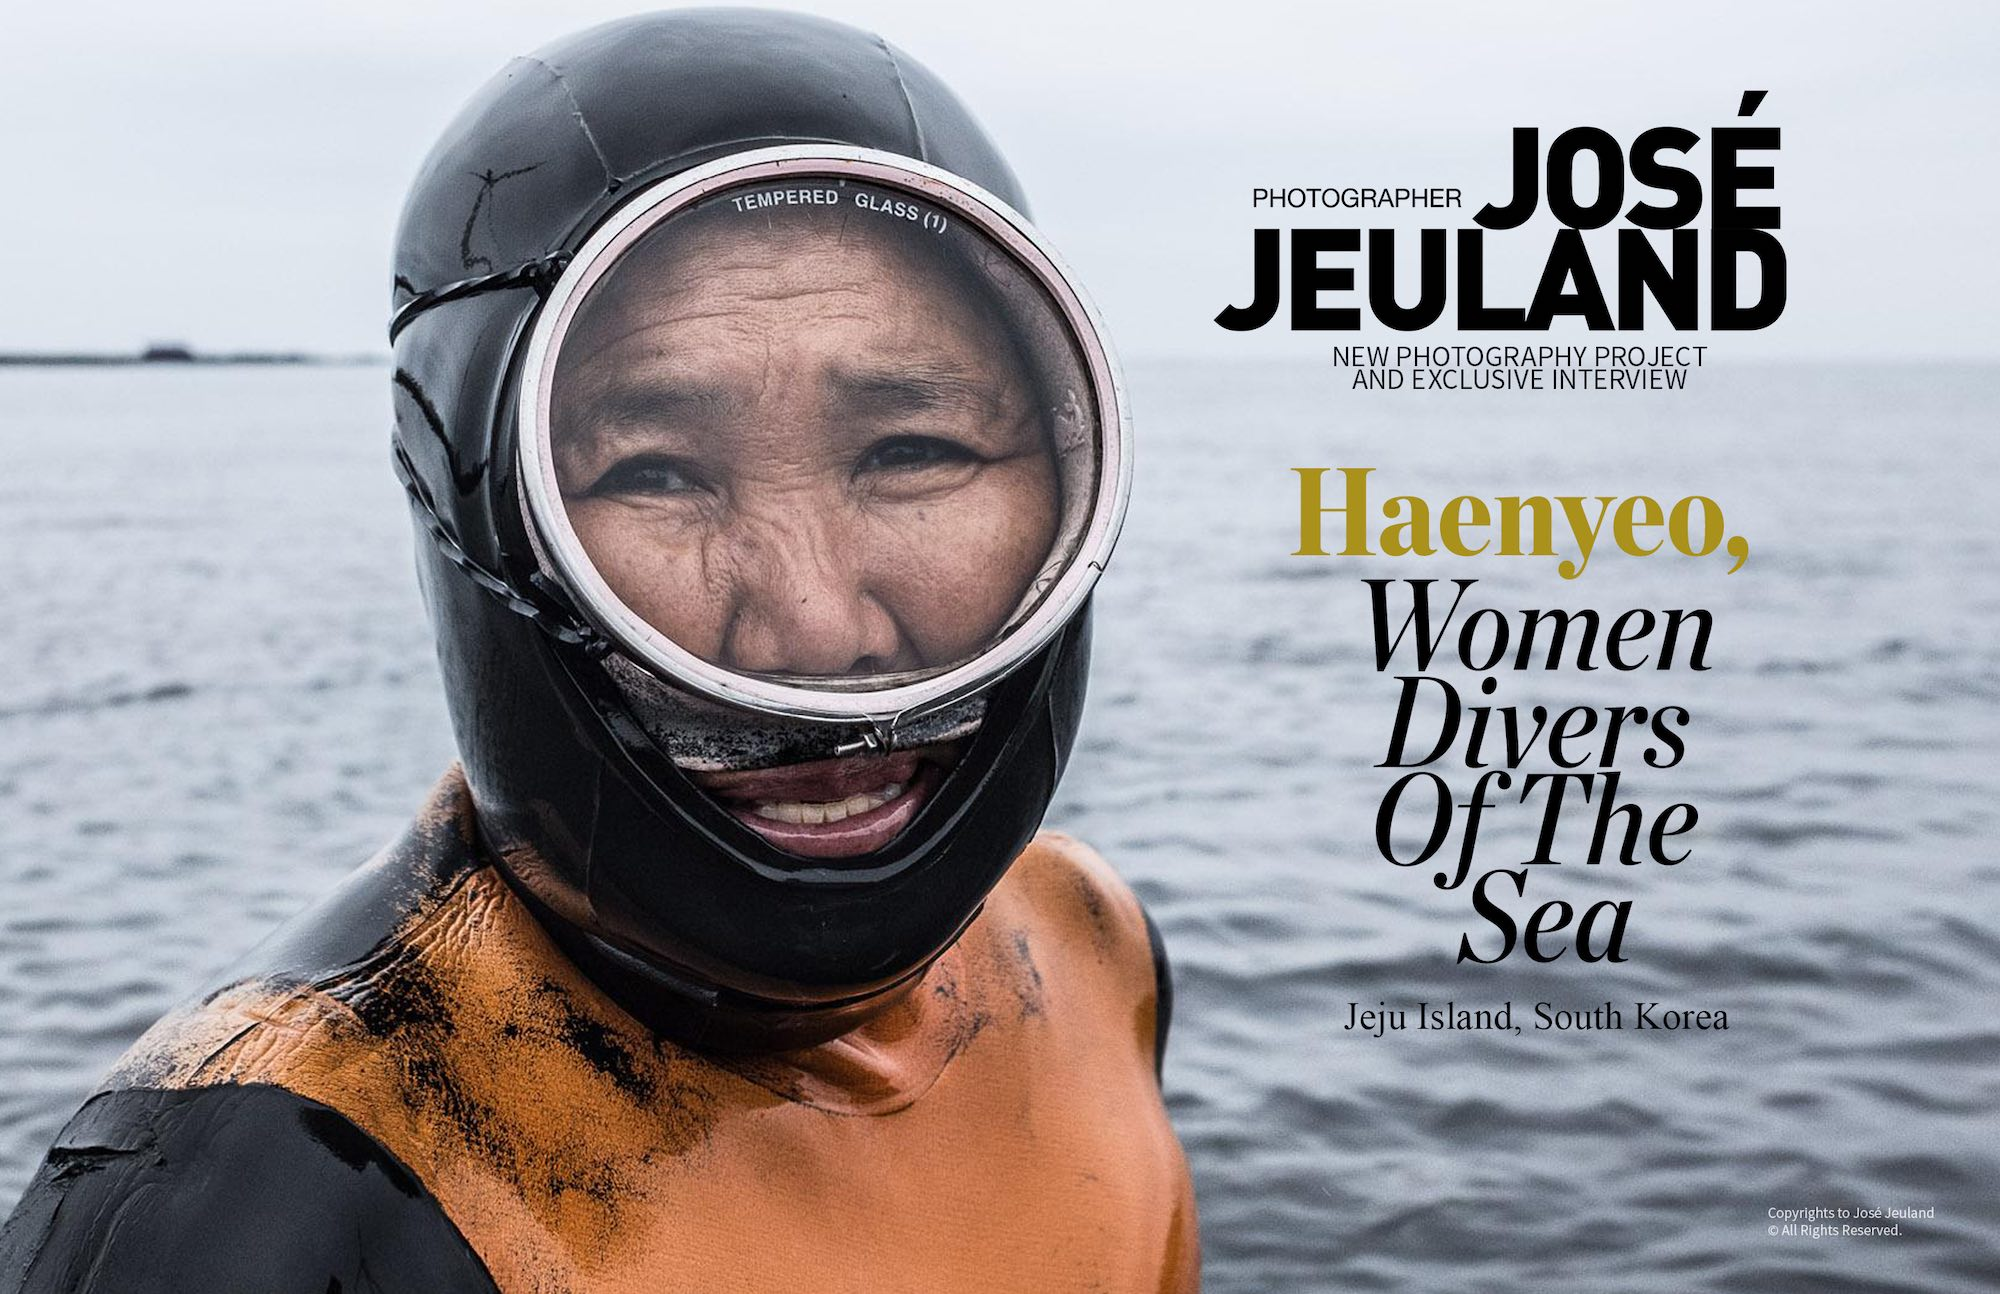 Lens Magazine Issue 64 Jan 2020 Jose Jeuland Photography documentary contributor interview Fujifilm x-photographer singapore Haenyeo Jeju Island Women Divers 1-2